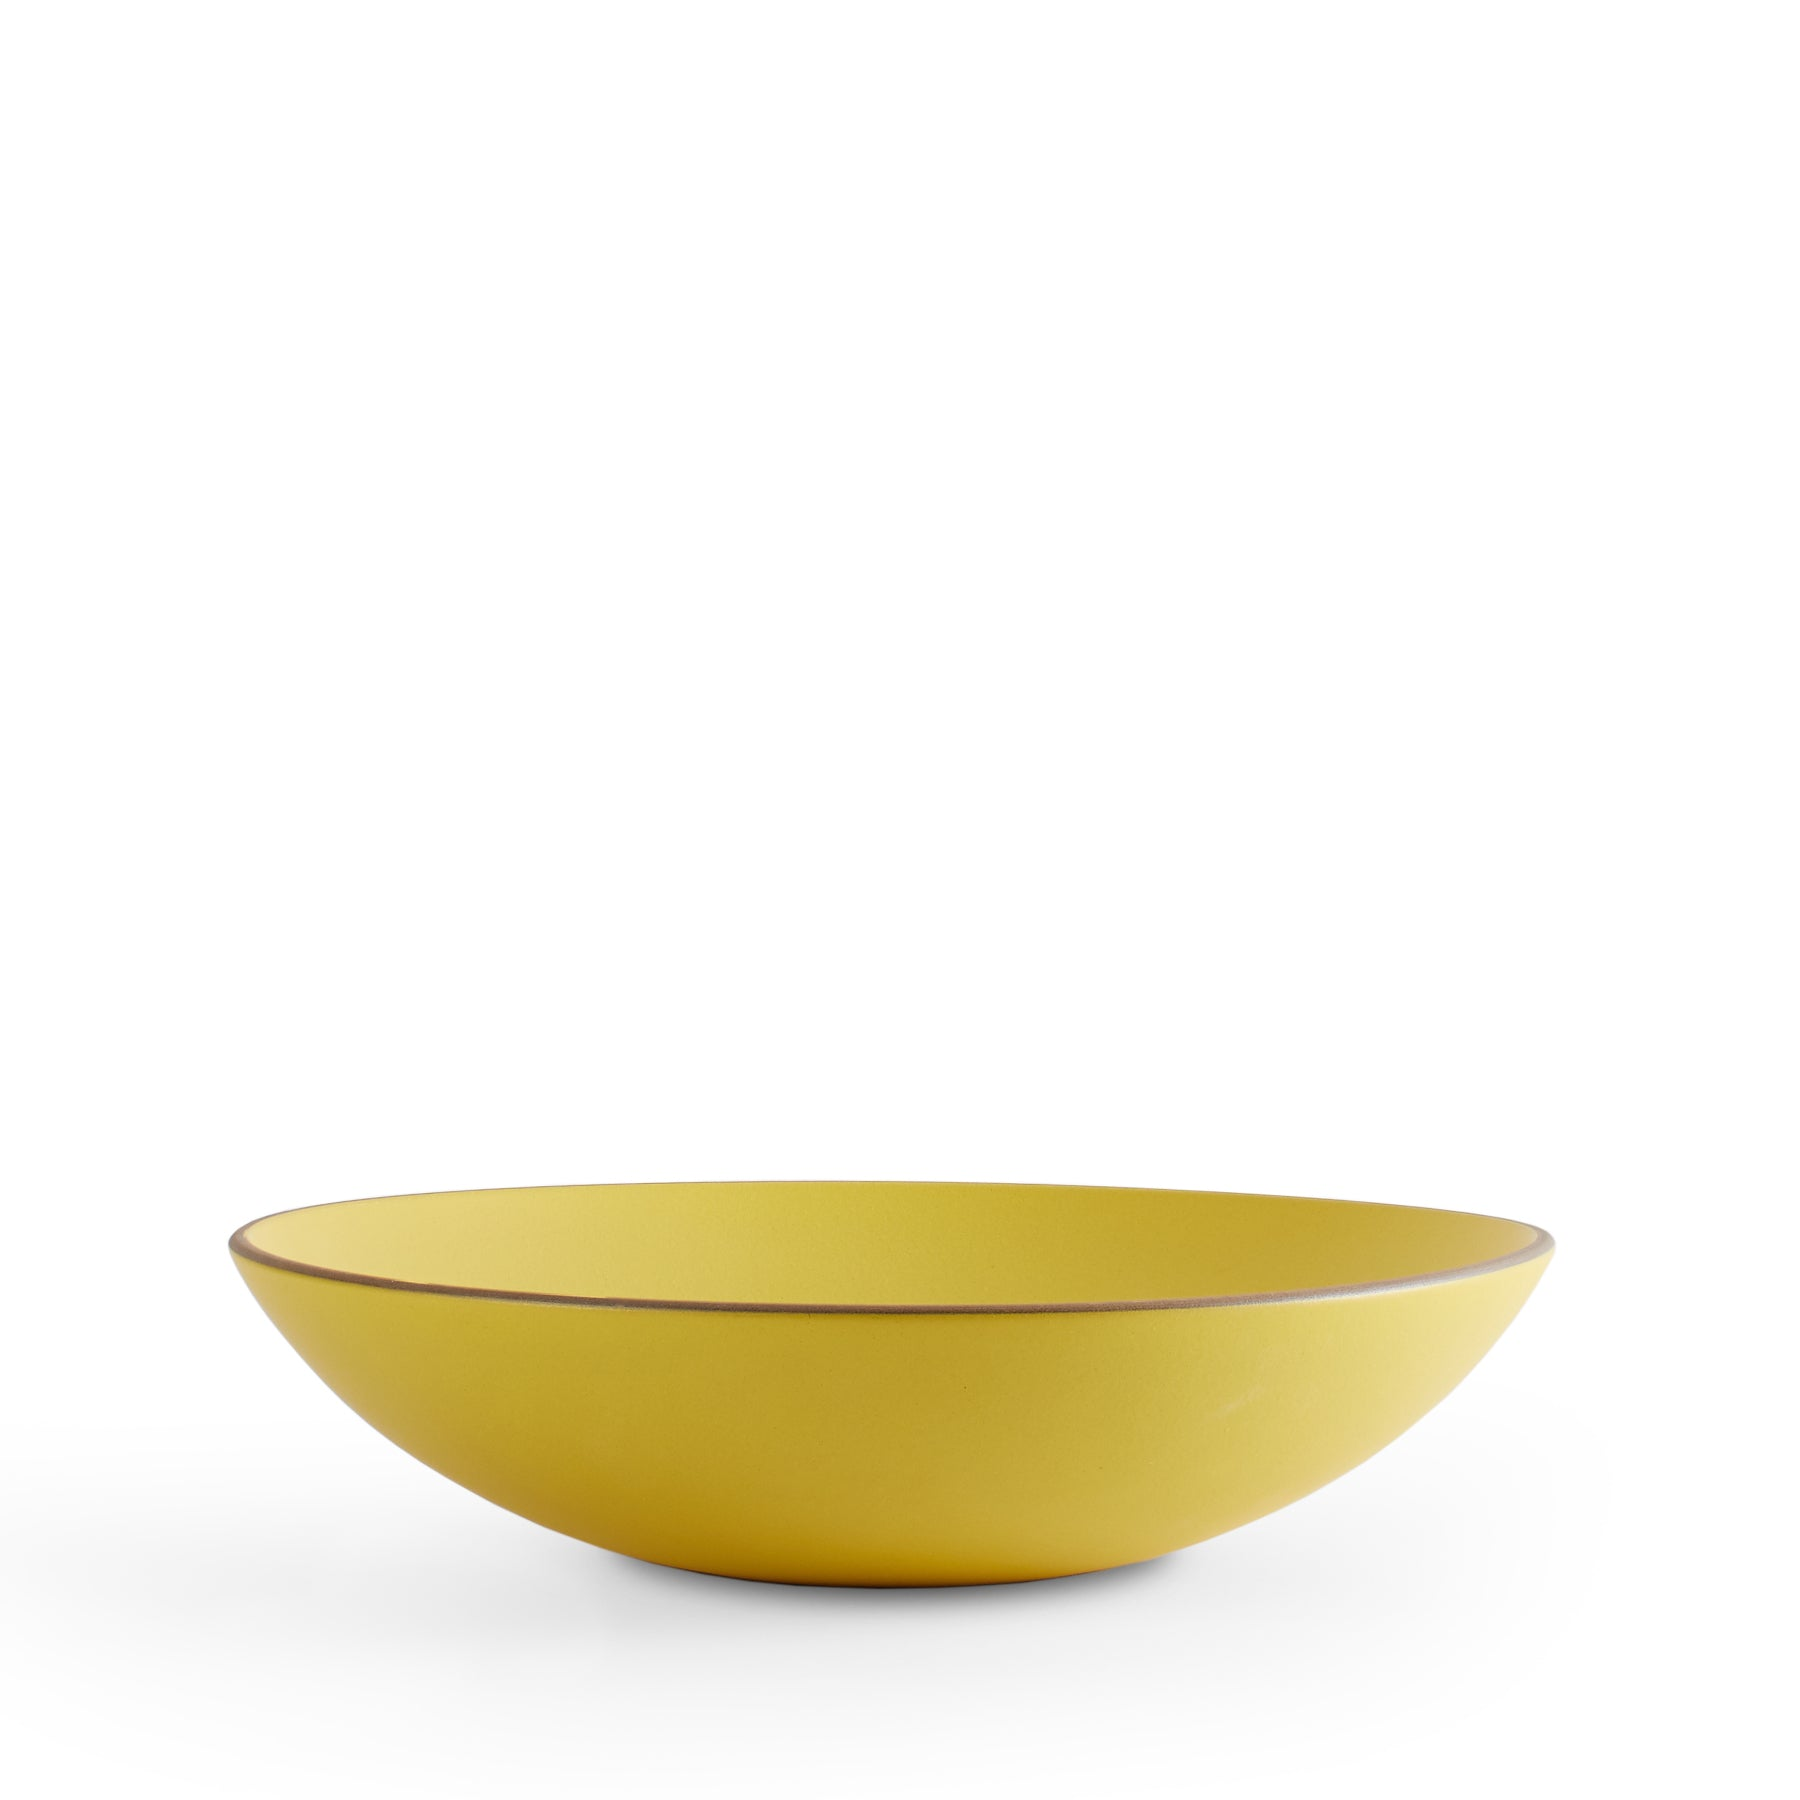 Shallow Salad Bowl in Lemongrass Zoom Image 1